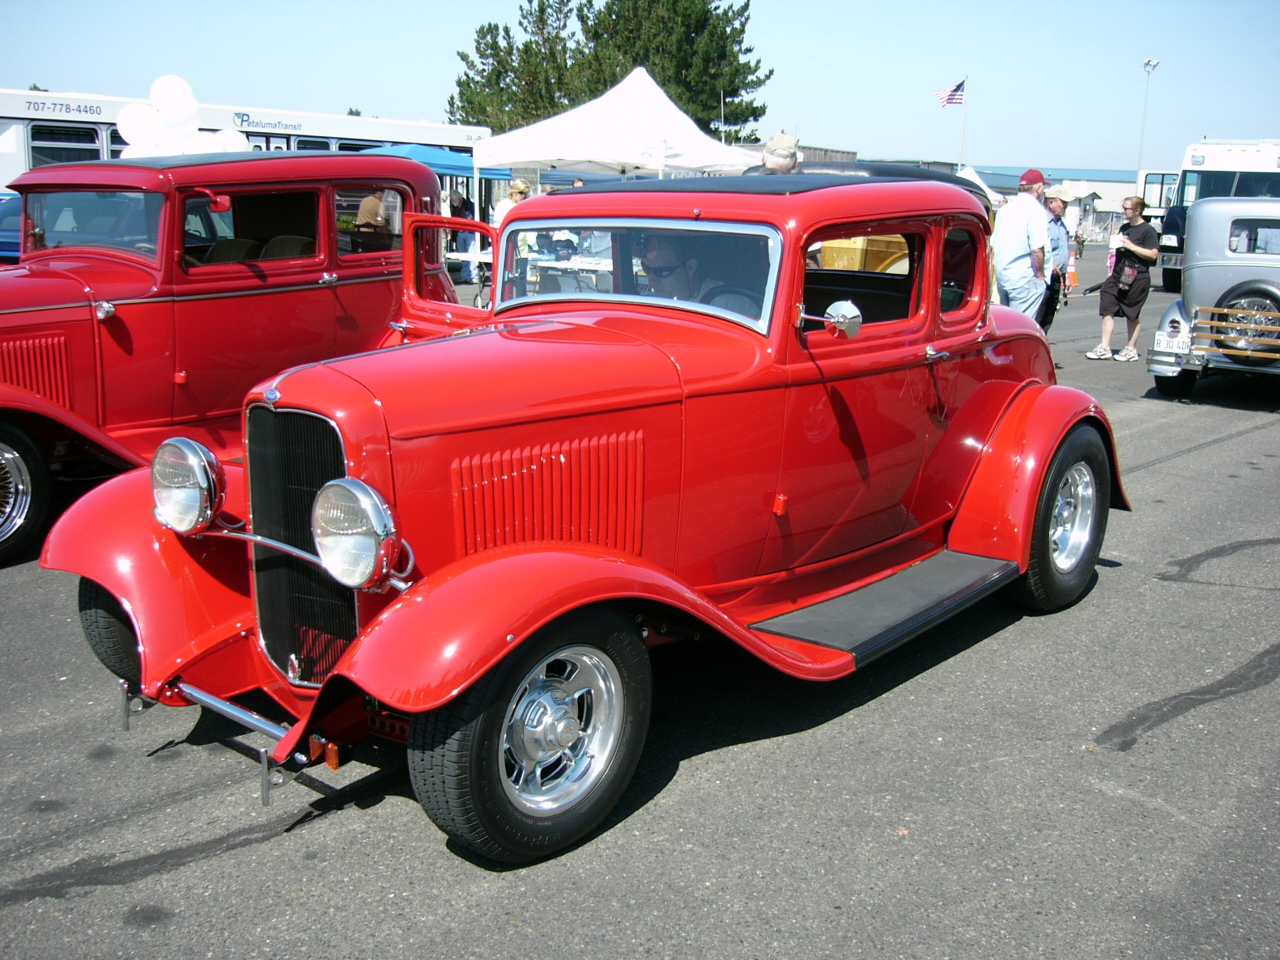 1932 ford red five window coupe by roadtripdog on deviantart for 1932 ford 5 window coupe